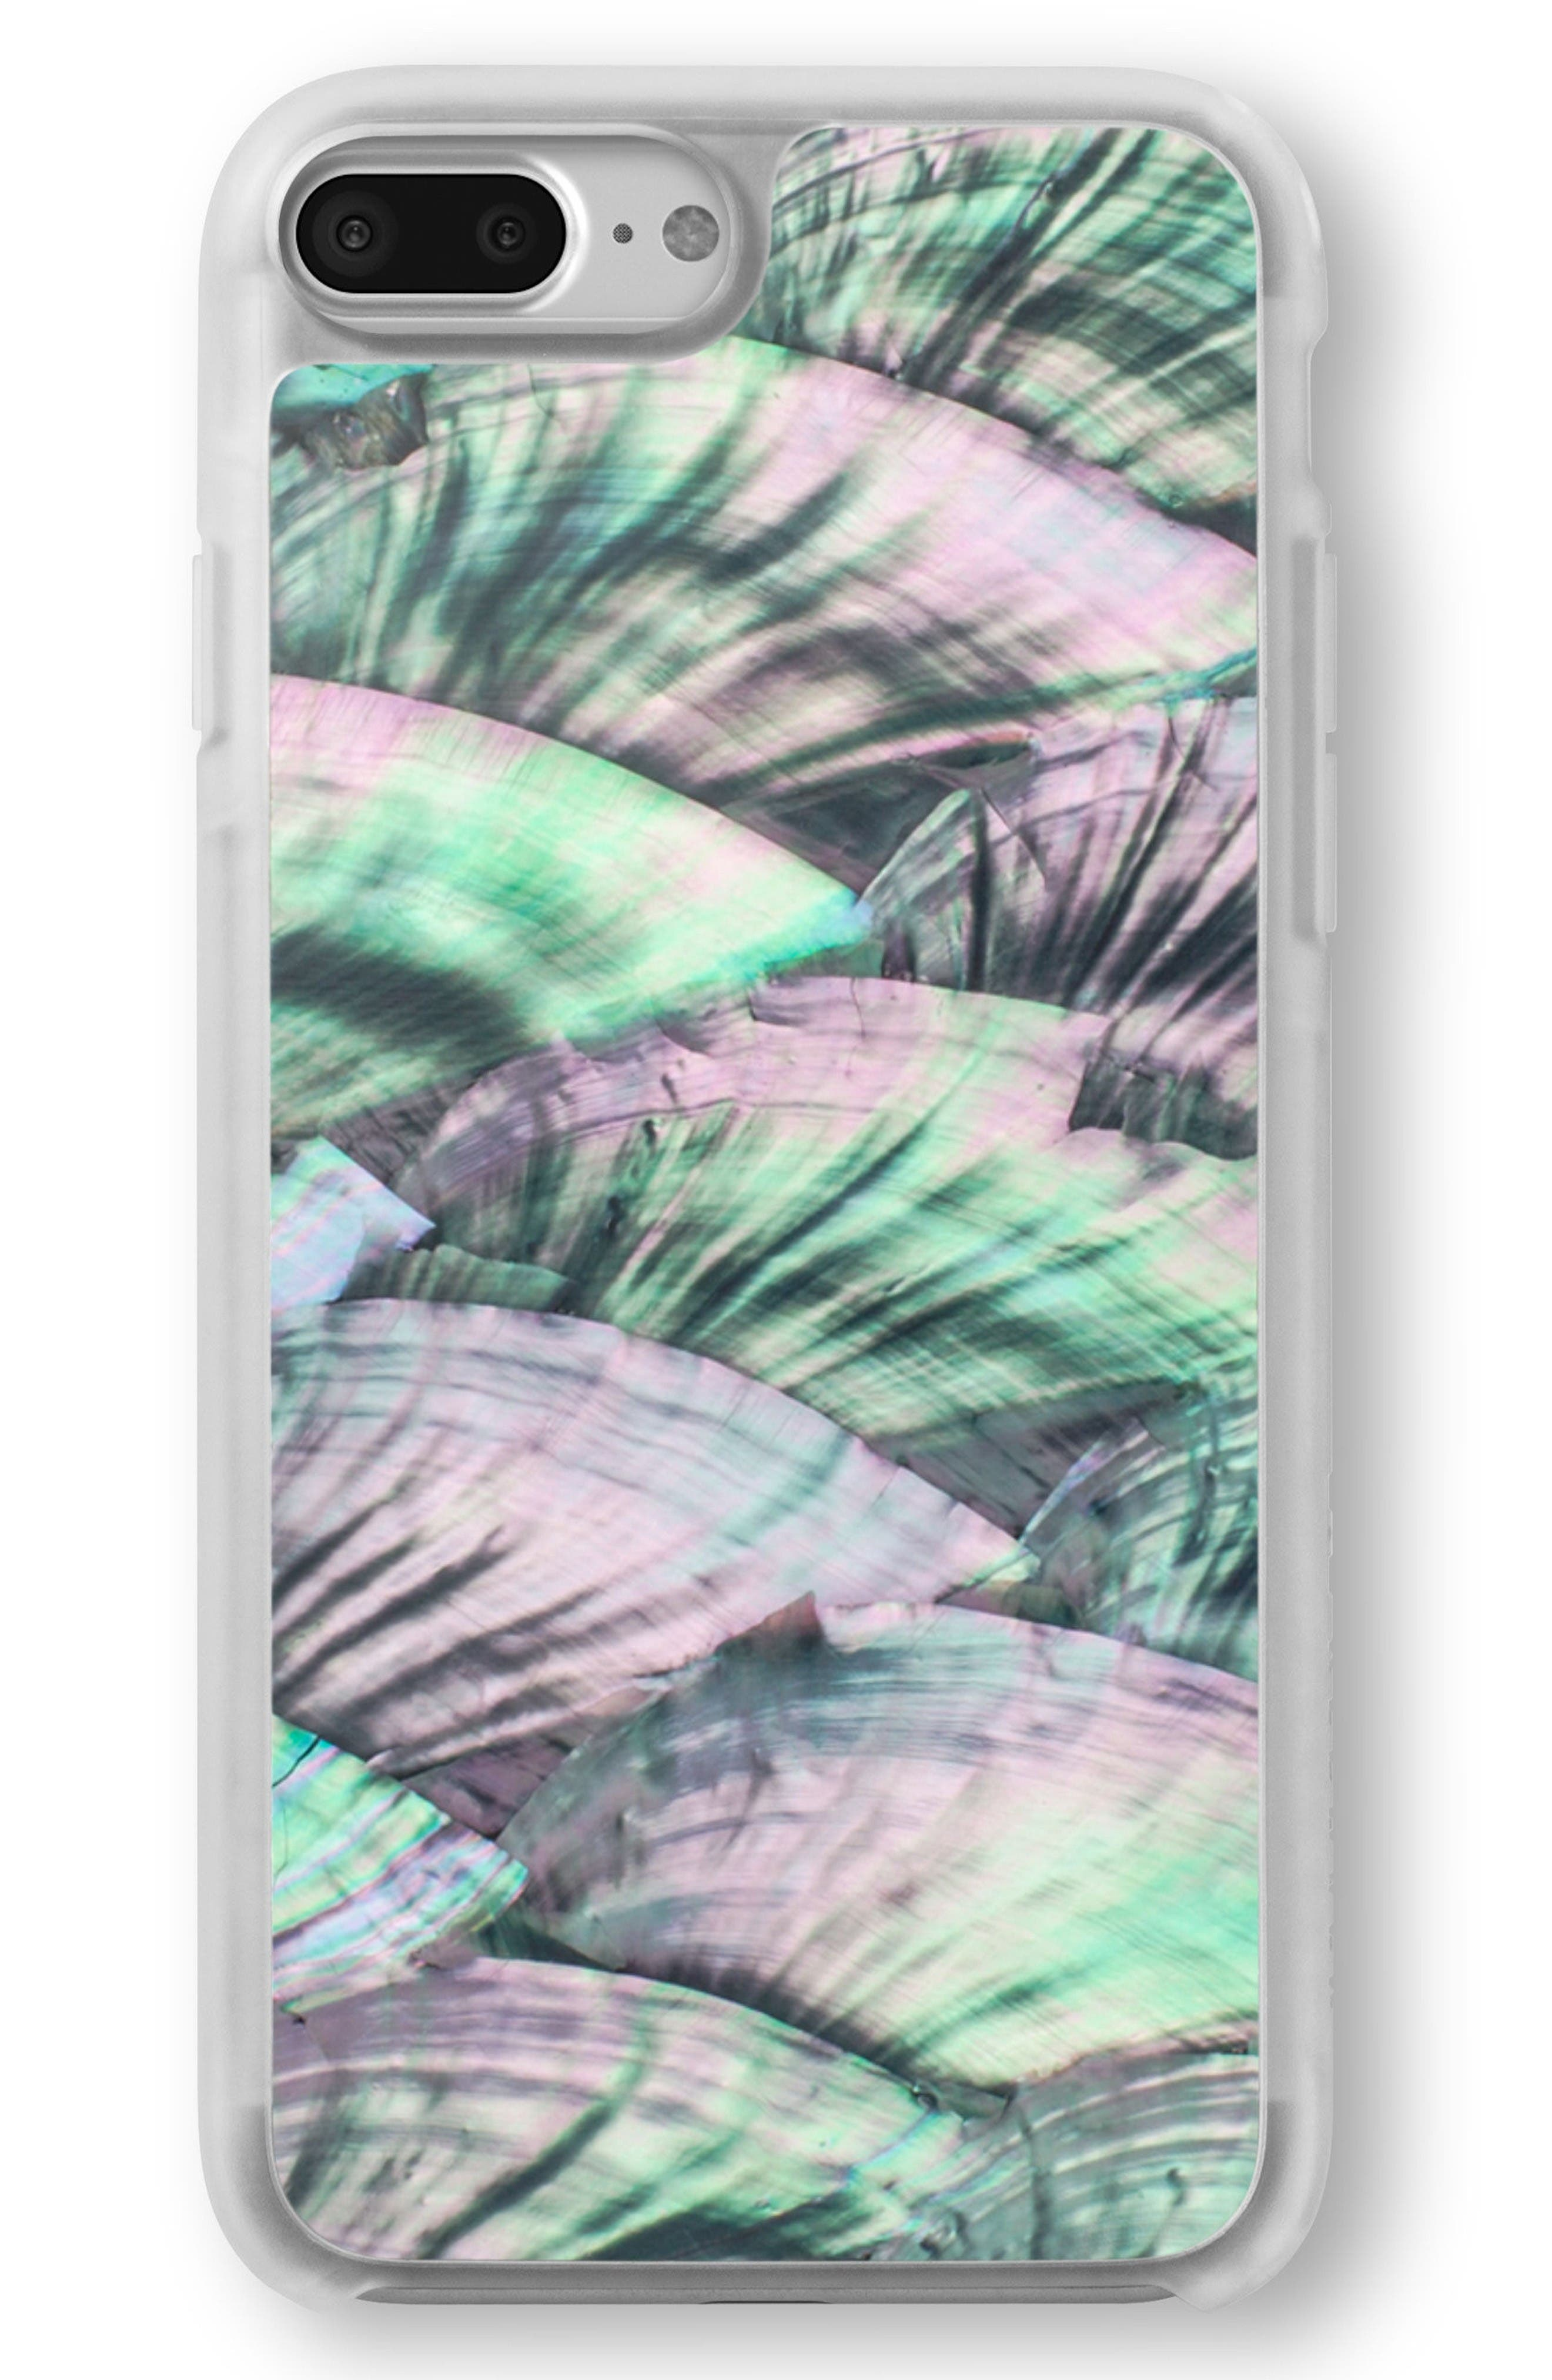 Recover Green Abalone iPhone 6/6s/7/8 & 6/6s/7/8 Plus Case